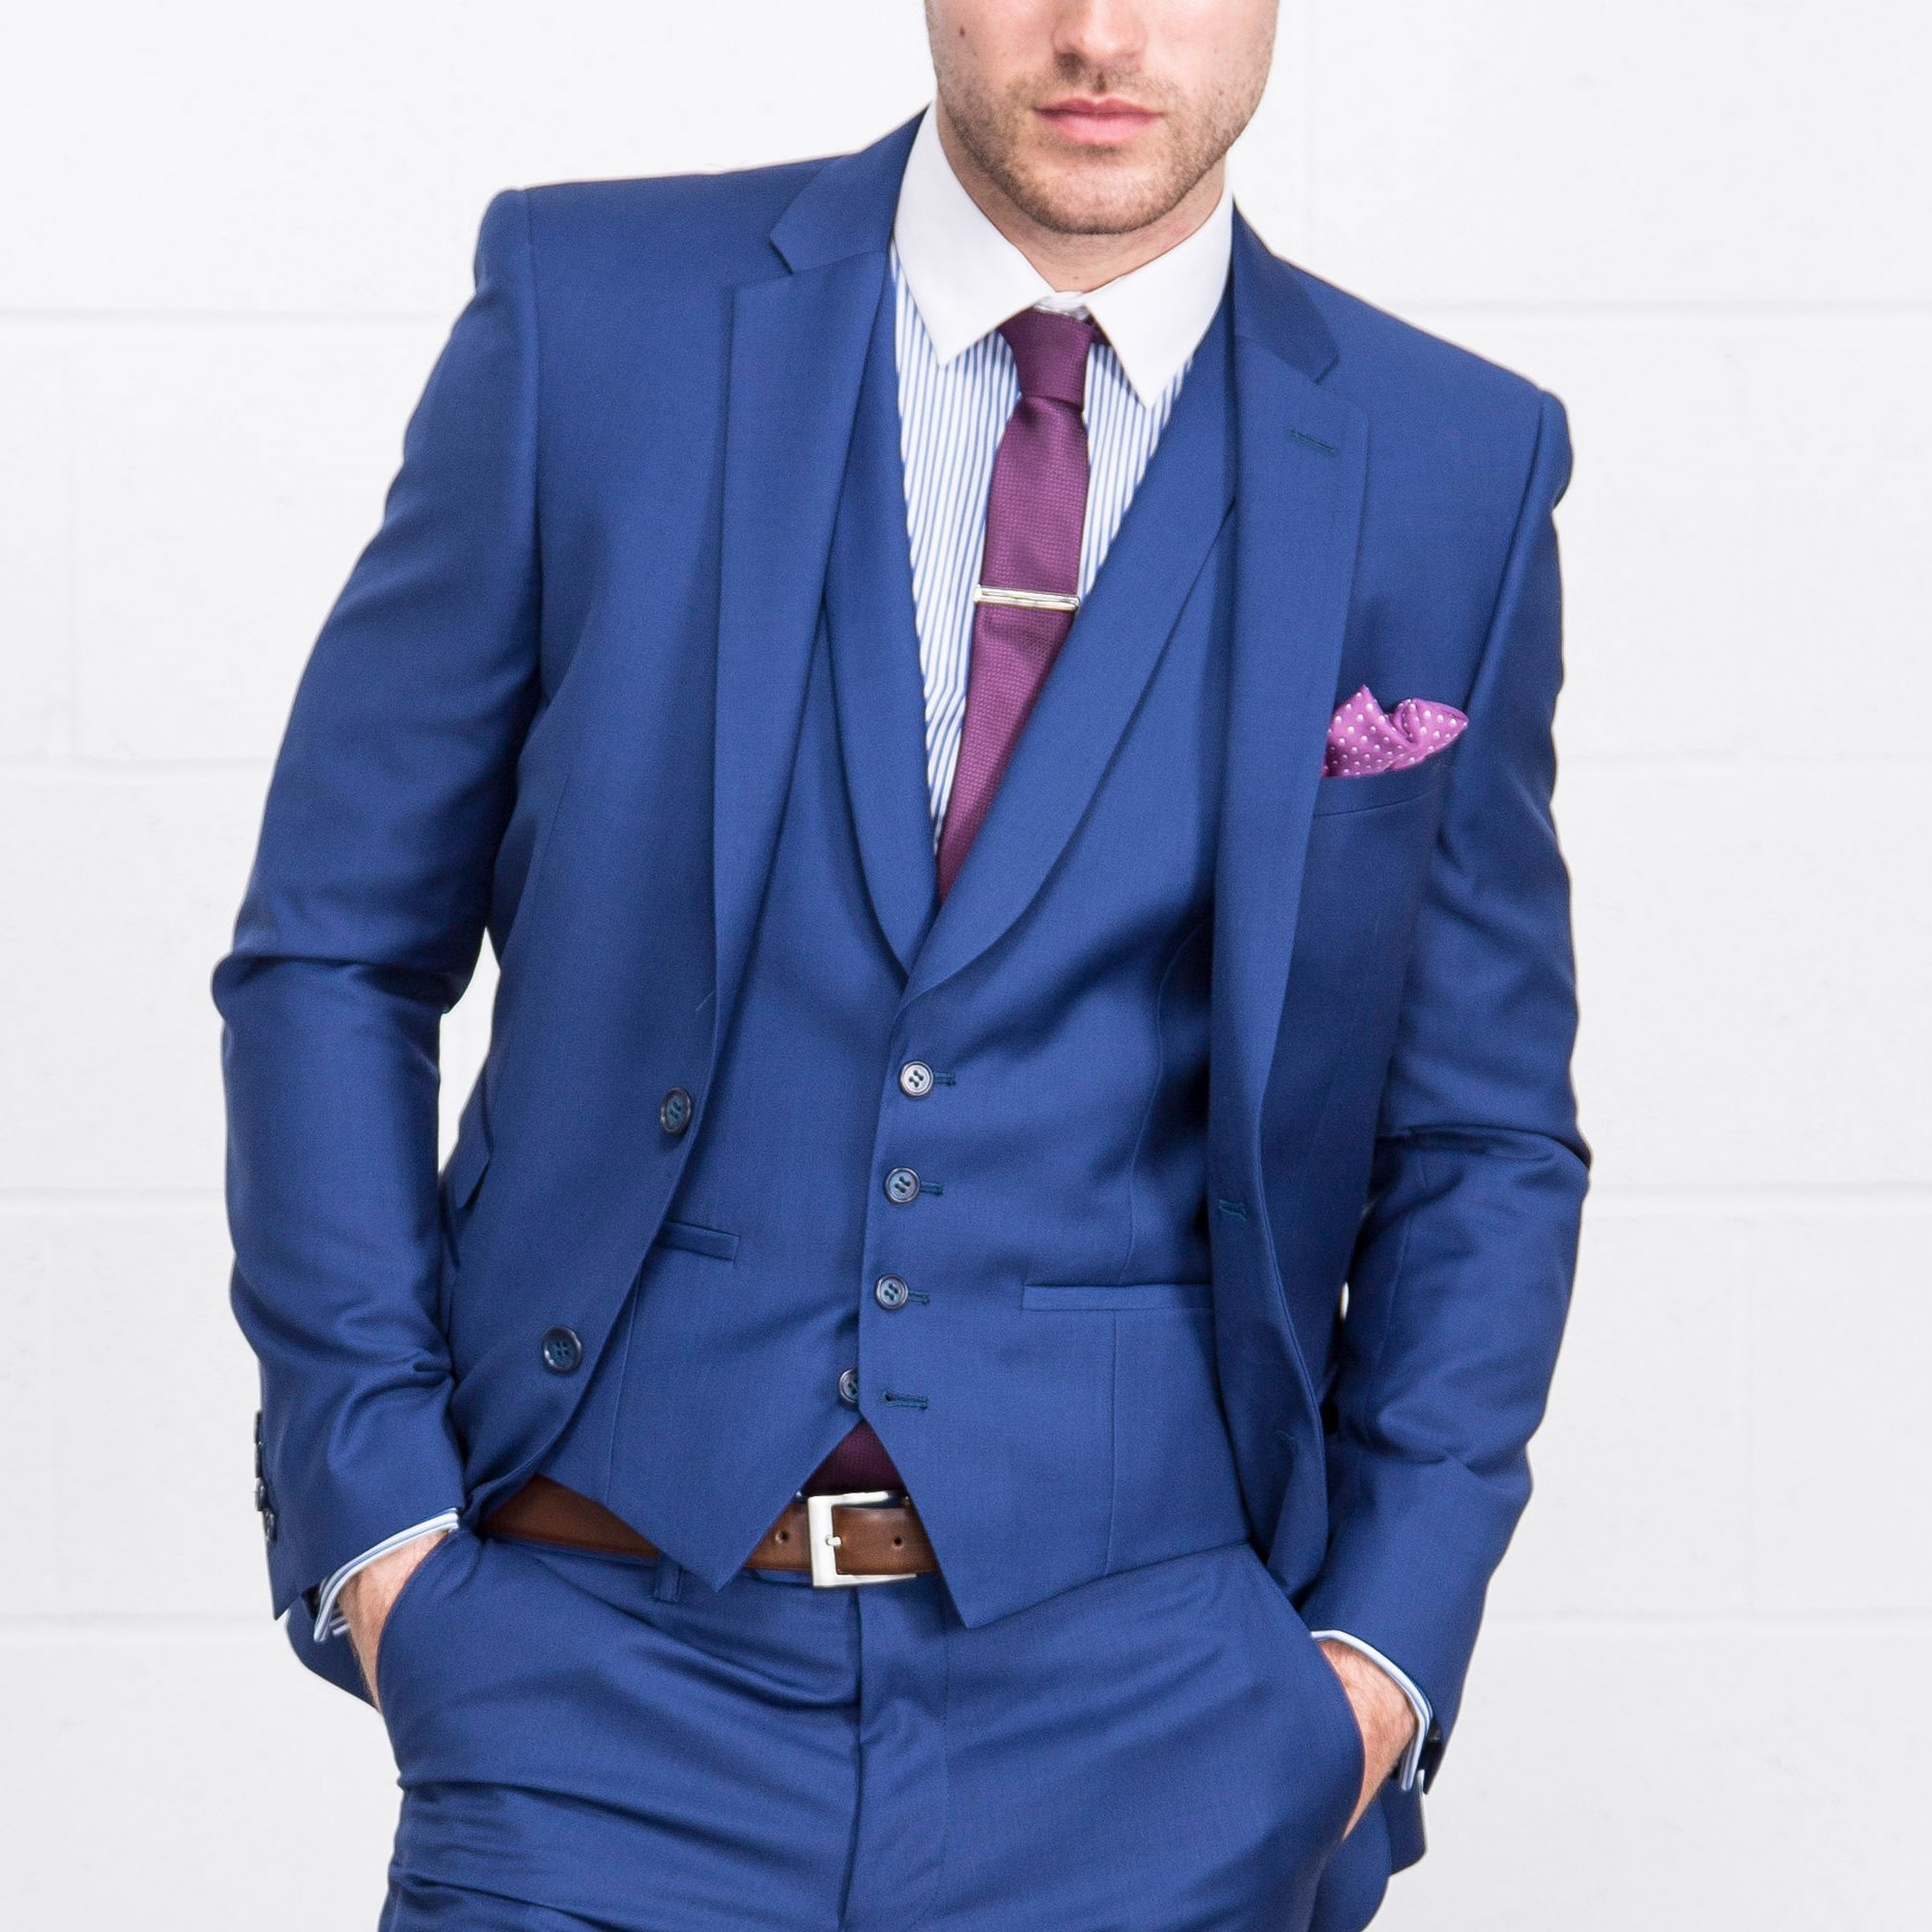 ONESIX5IVE Three Piece Slim Fit Blue Suit - Three Piece Suits ...